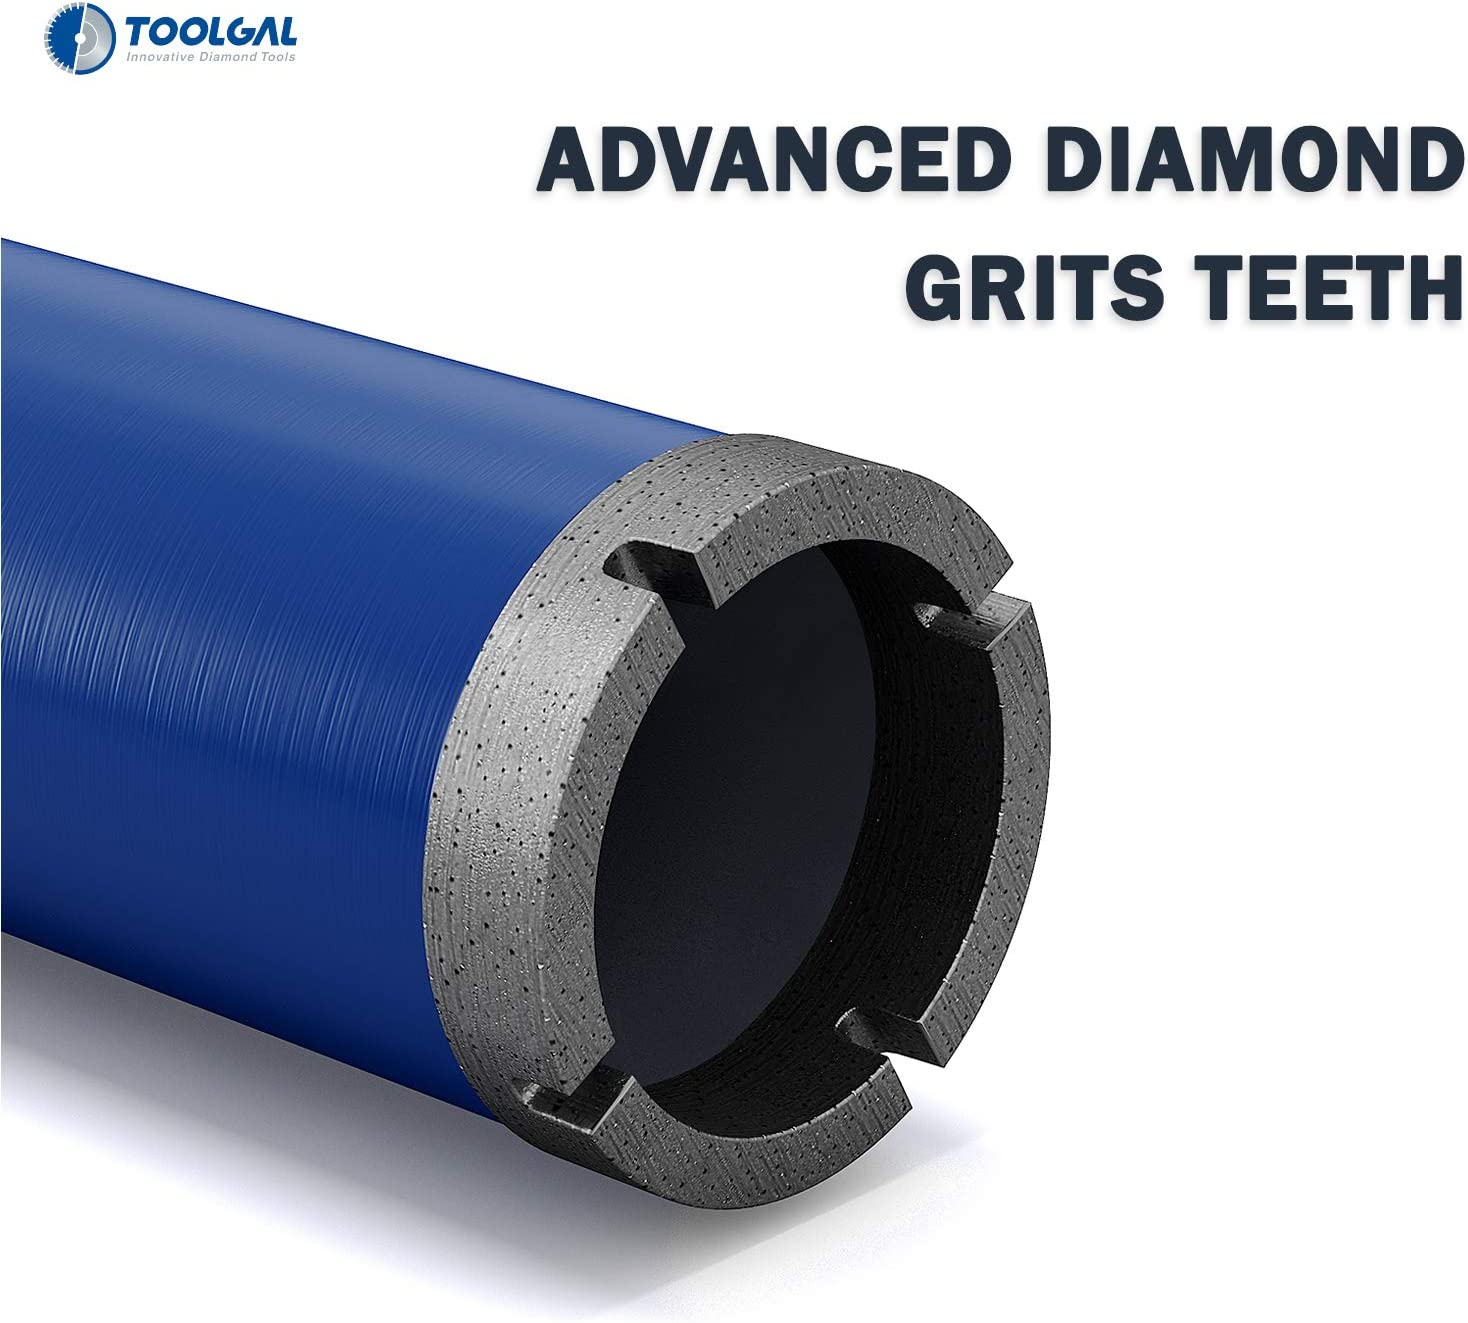 """Toolgal 1 1//2/"""" Reinf 40mm Wet Drilling only for Use with Fixed or Hand-Held Core Drilling Machines with Water Feed to Drill Holes in Construction Materials Such as Concrete Diamond Core Drill Bit"""